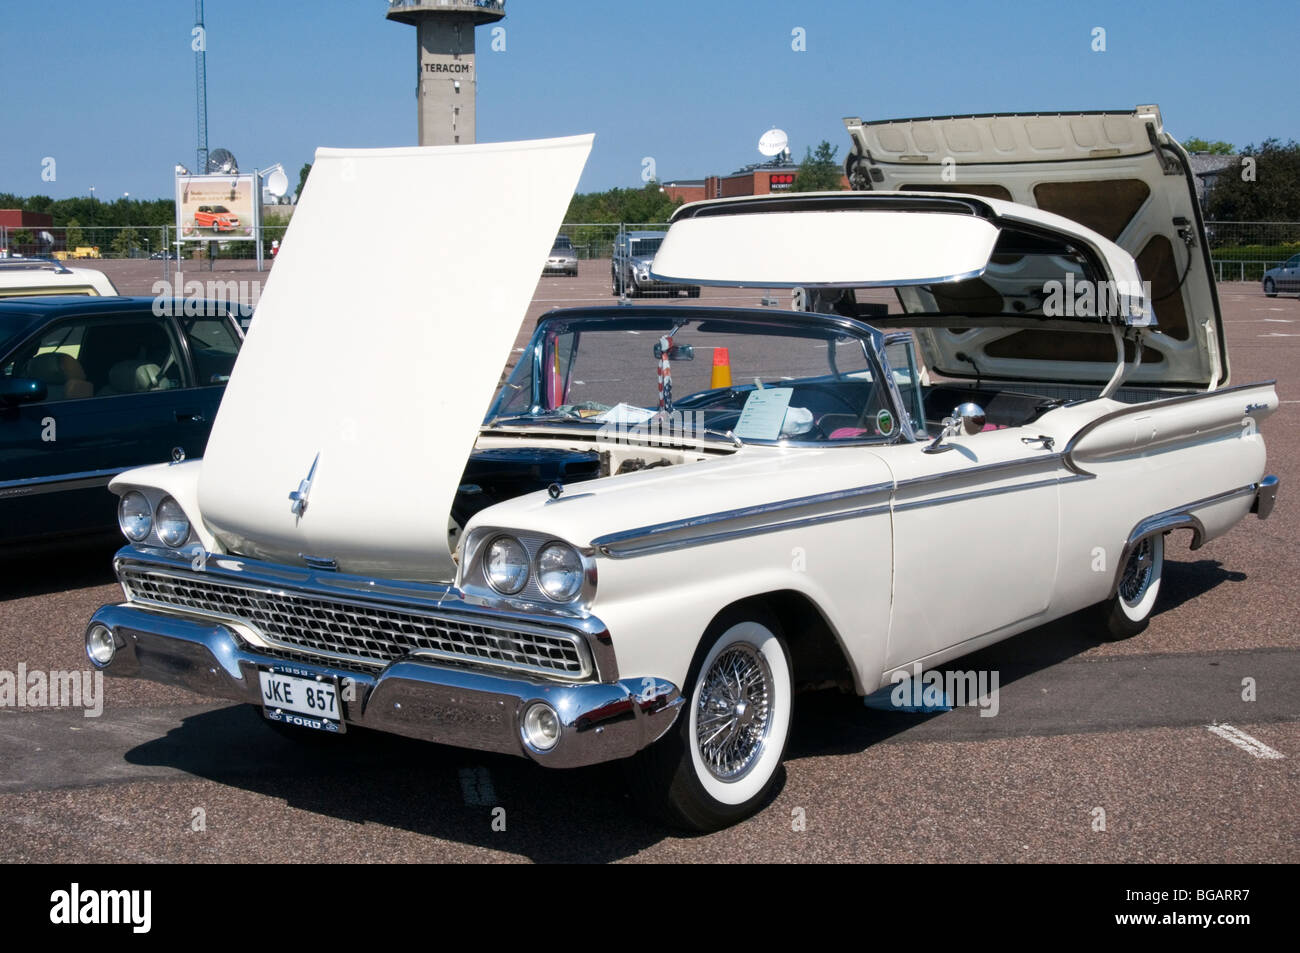 1959 ford sunliner convertible american car large folding retracting retractable metal hard top convertible classic